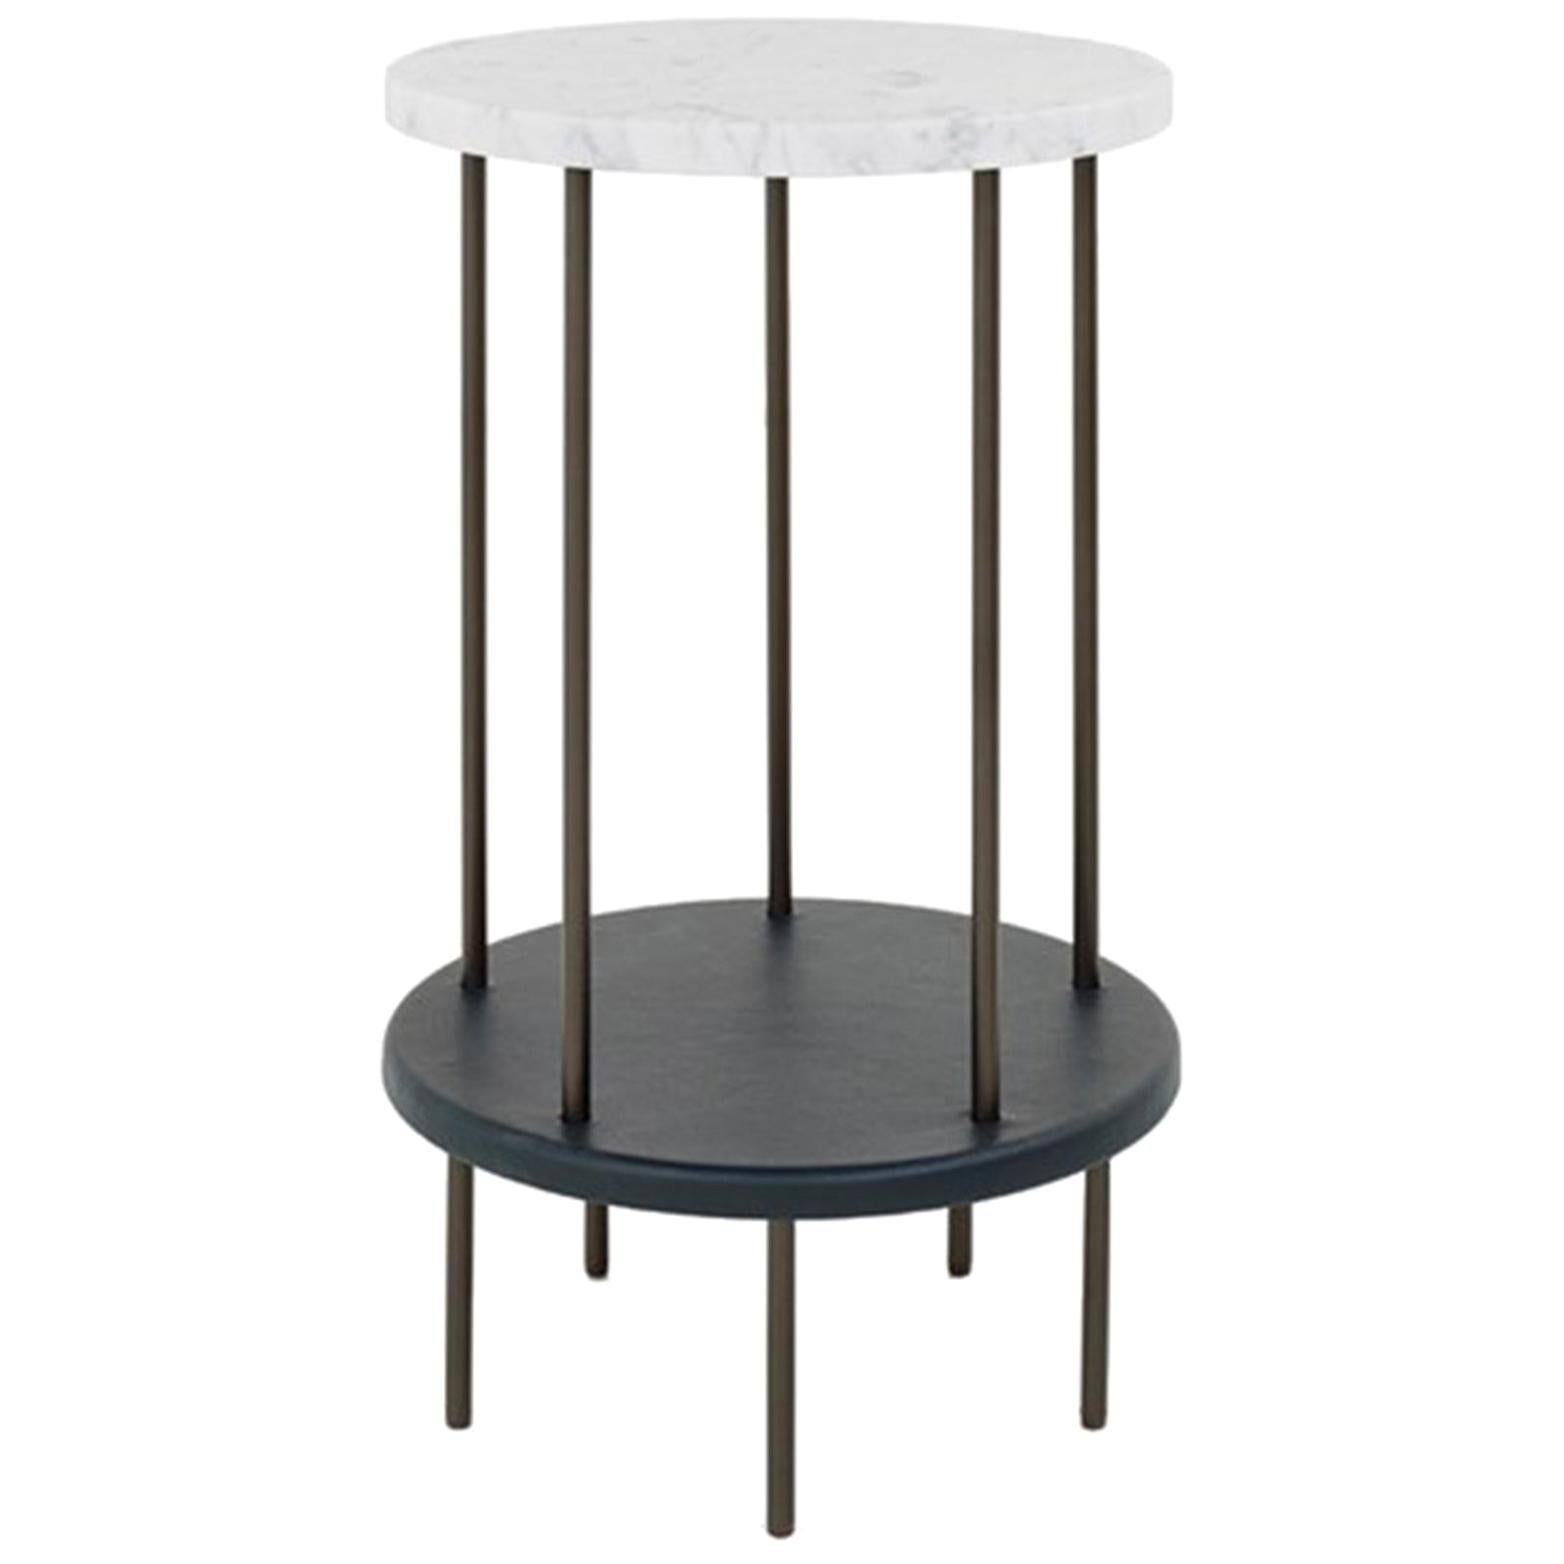 Wittmann DD Marble-Top Table Designed by Jaime Hayon